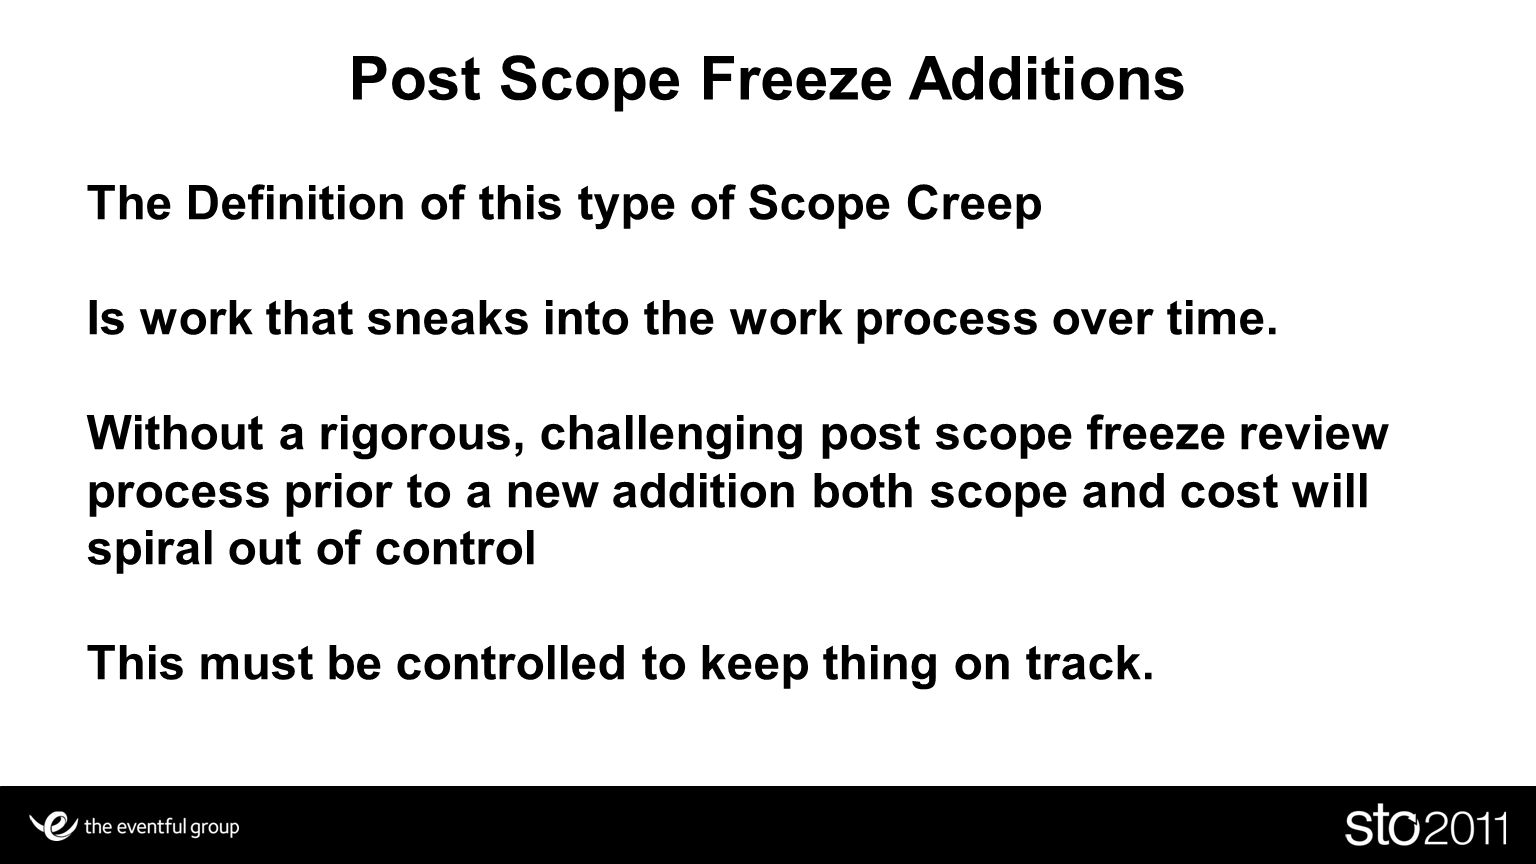 Post Scope Freeze Additions The Definition of this type of Scope Creep Is work that sneaks into the work process over time. Without a rigorous, challe